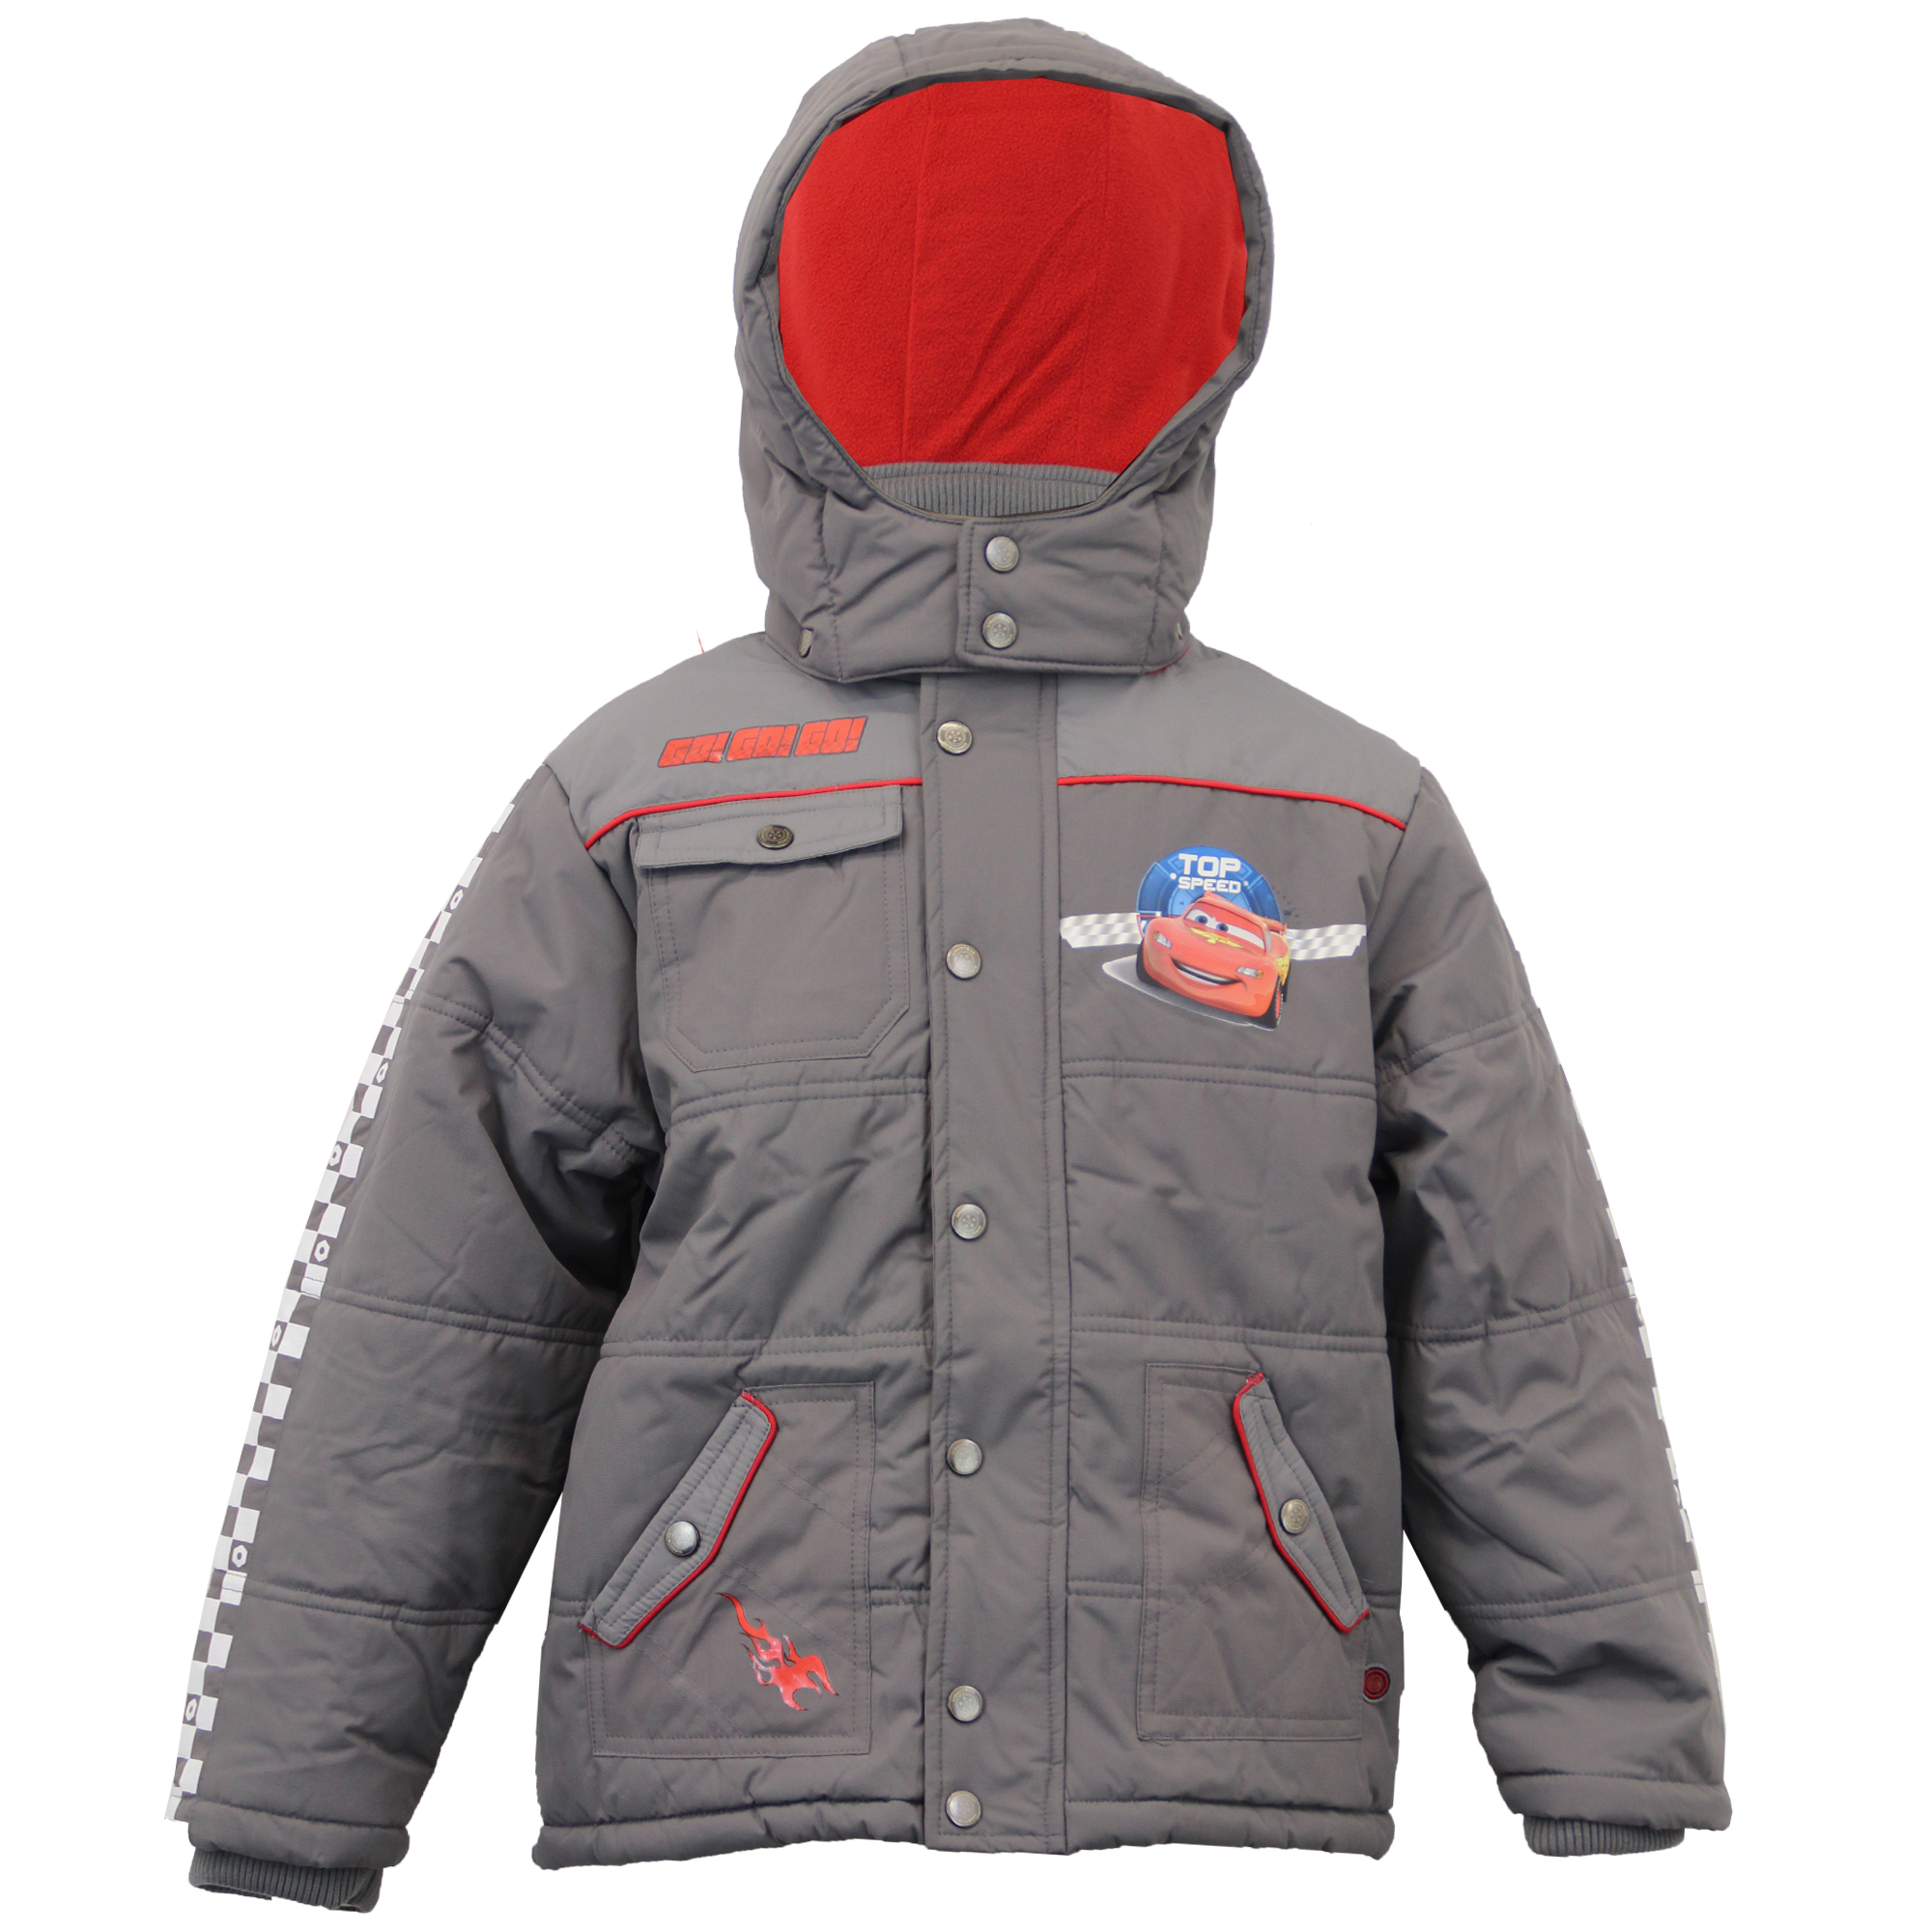 Batman. Mickey Mouse. Paw Patrol. Foxfire for Kids. Spider-Man. Child of Mine by Carter's. Boys' Winter Coats. invalid category id. Boys' Winter Coats. Product - Big Chill Toddler Boys Quilted Winter Puffer Jacket with Sherpa Hood Coat size 2T. Product Image. Price $